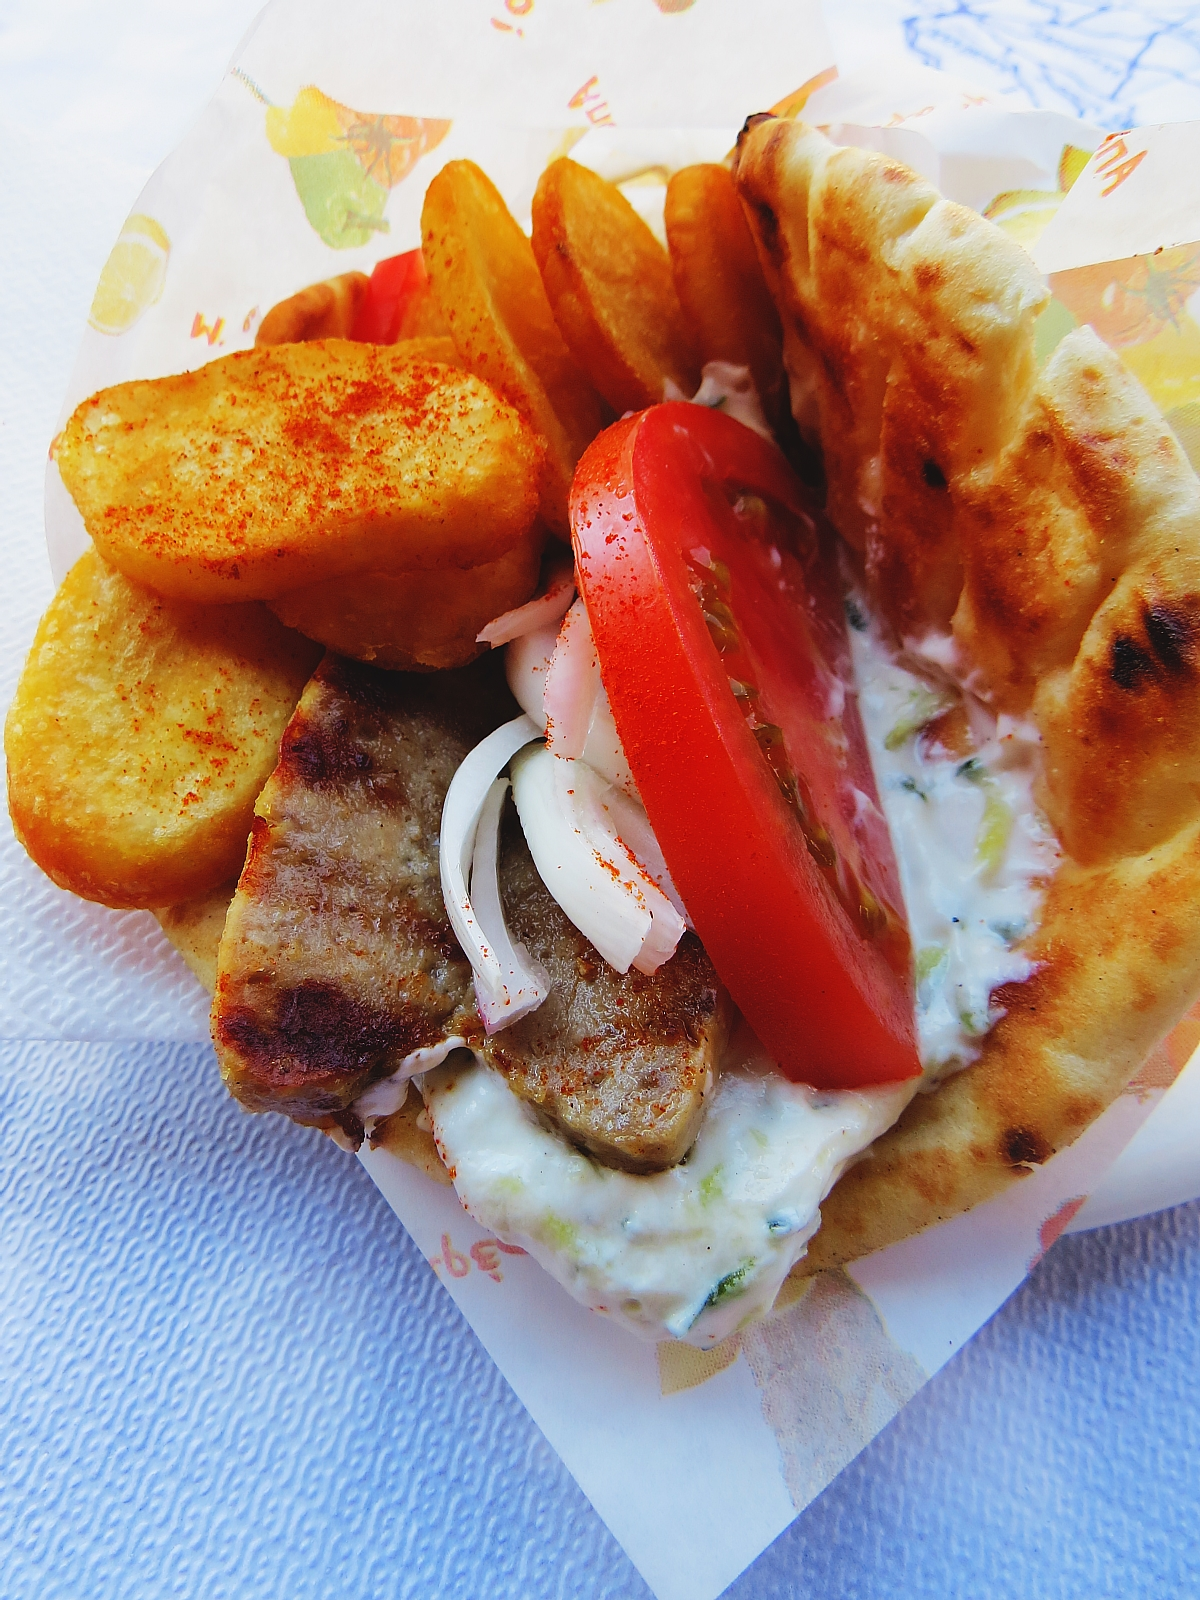 More Greek Food Dishes You Won't Want To Miss